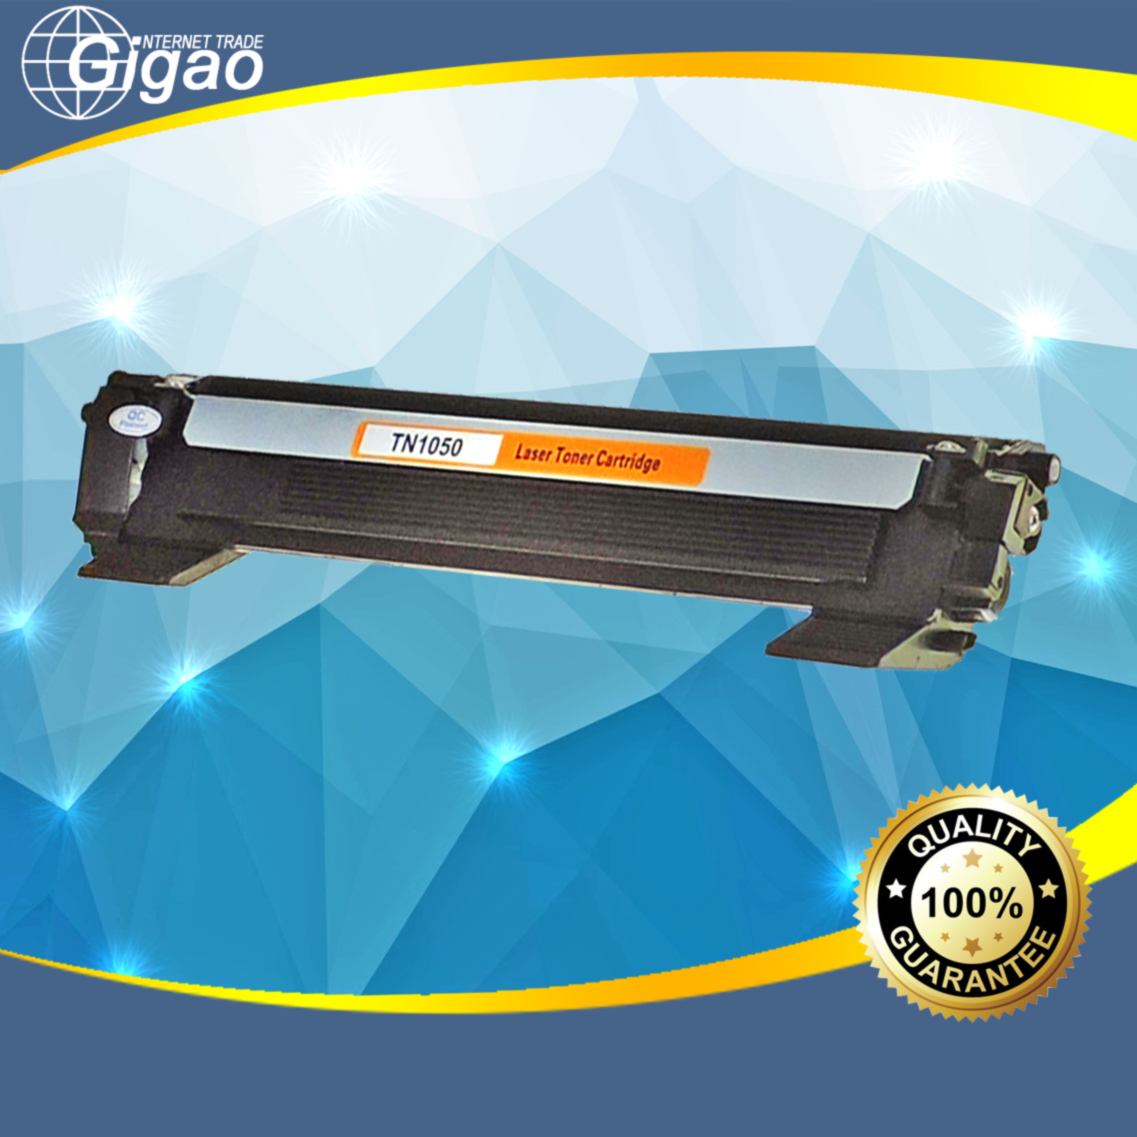 Toner TN-1050 / TN-2010 für Brother DCP-1610W